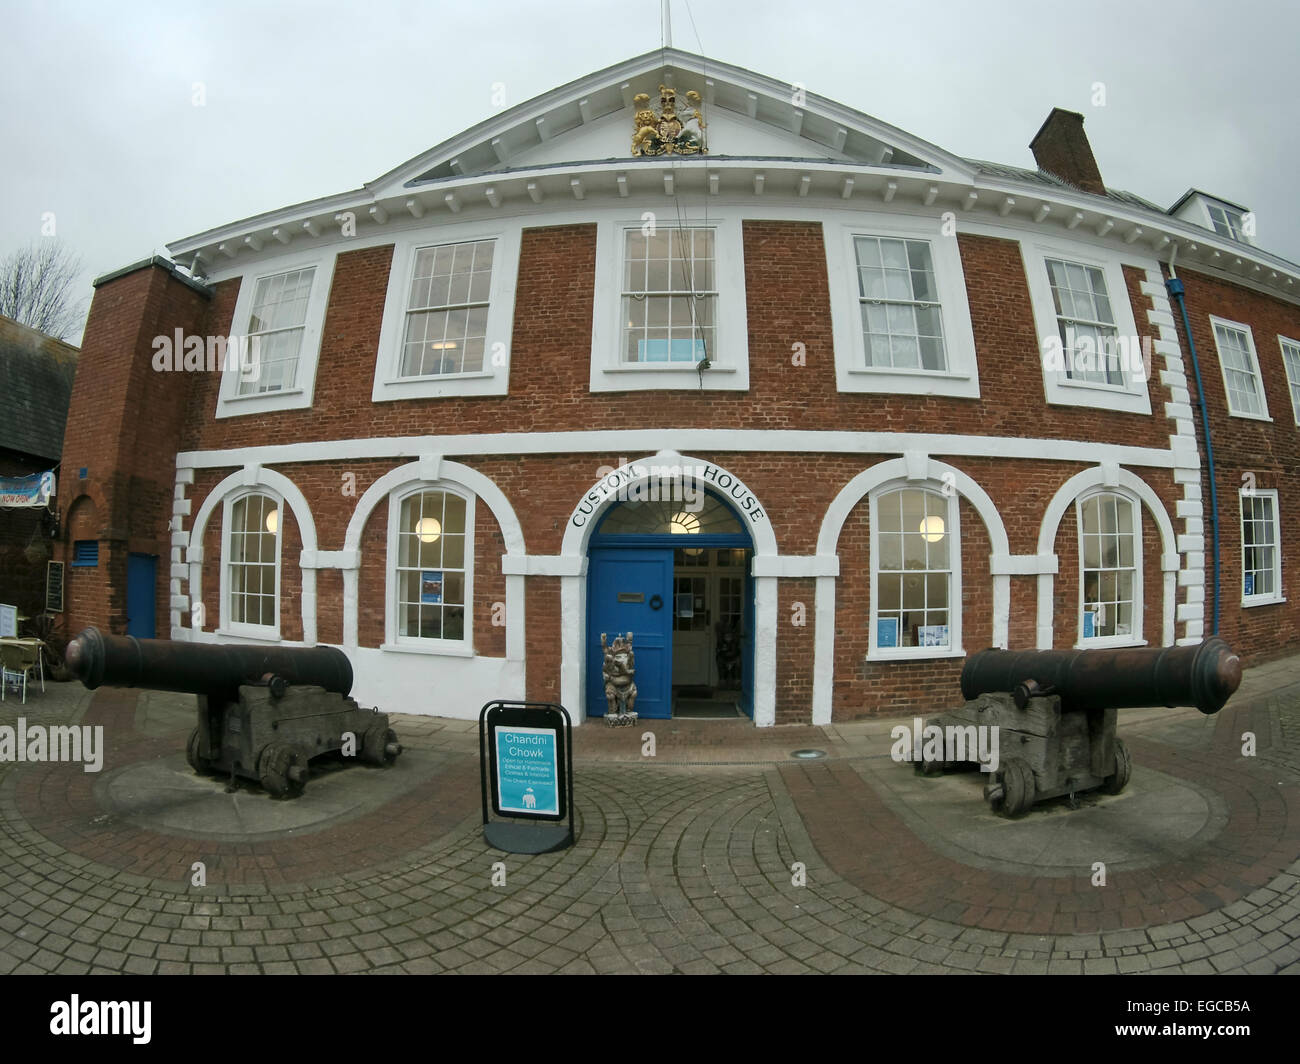 Cannon outside the Customs House Exeter Quay UK Built 1680-81 Fish eye view. - Stock Image